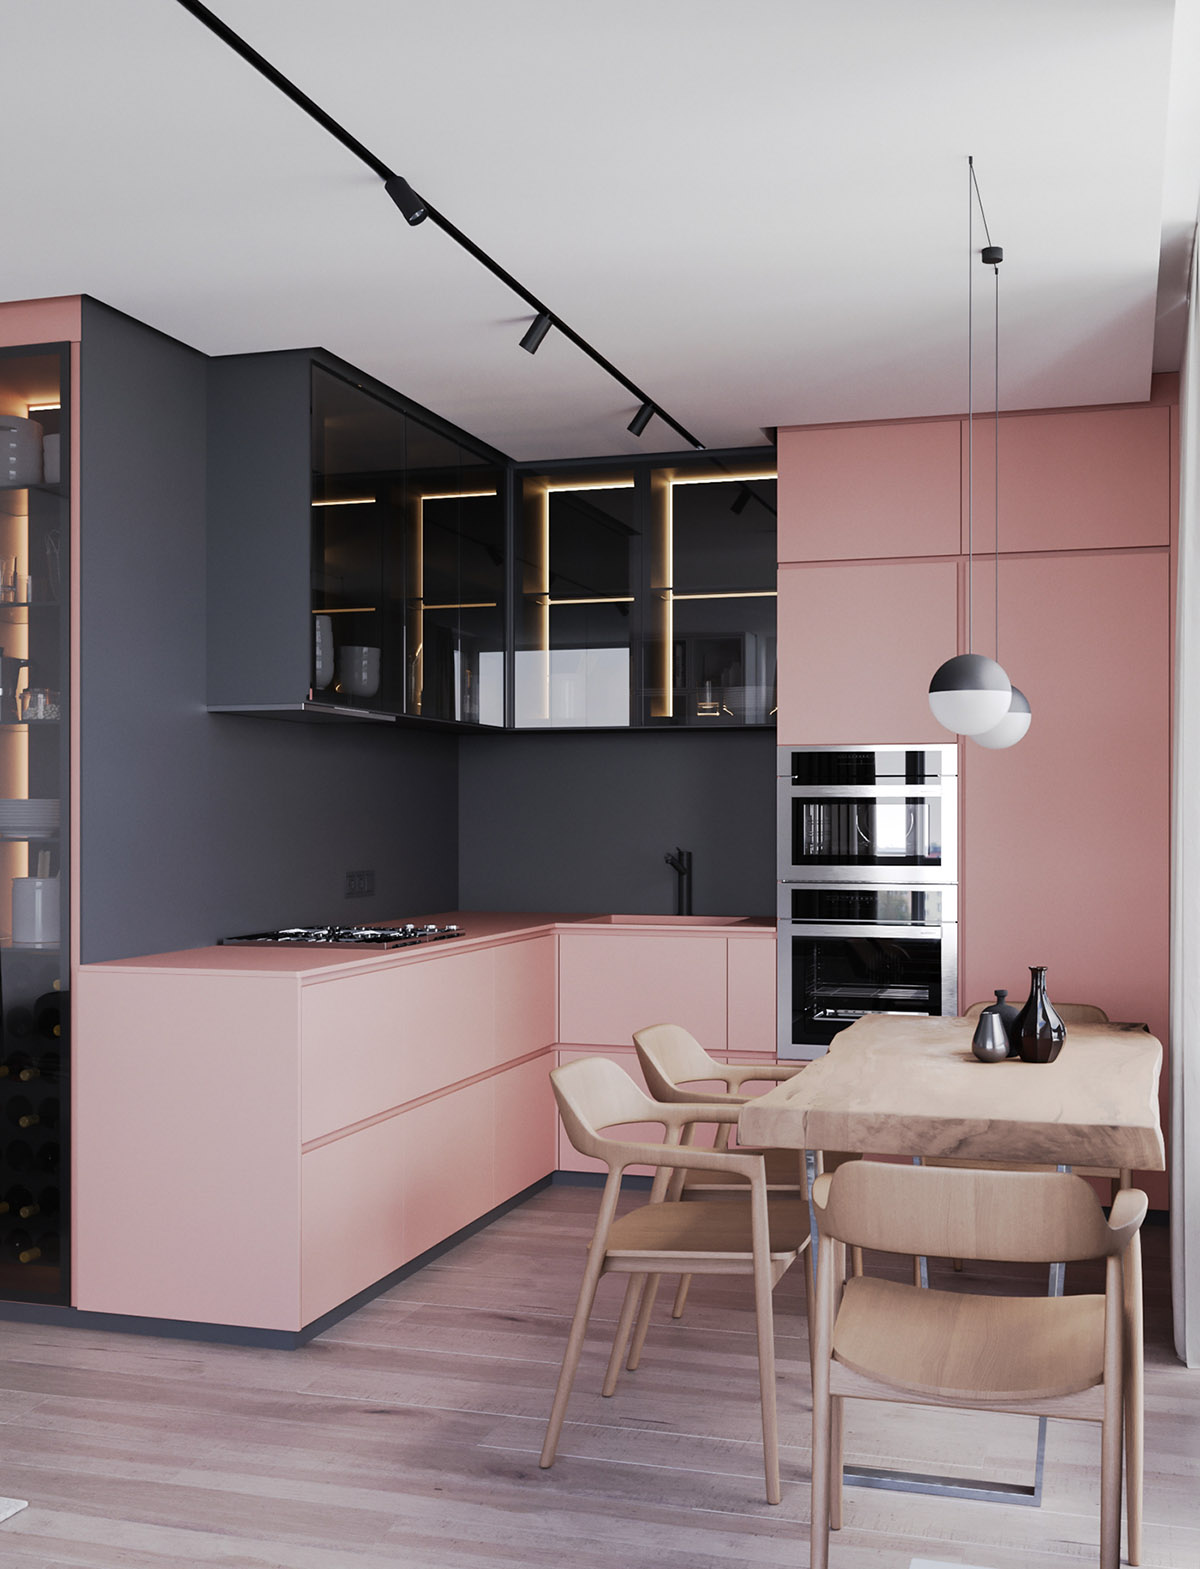 A Striking Example Of Interior Design Using Pink And Grey images 4